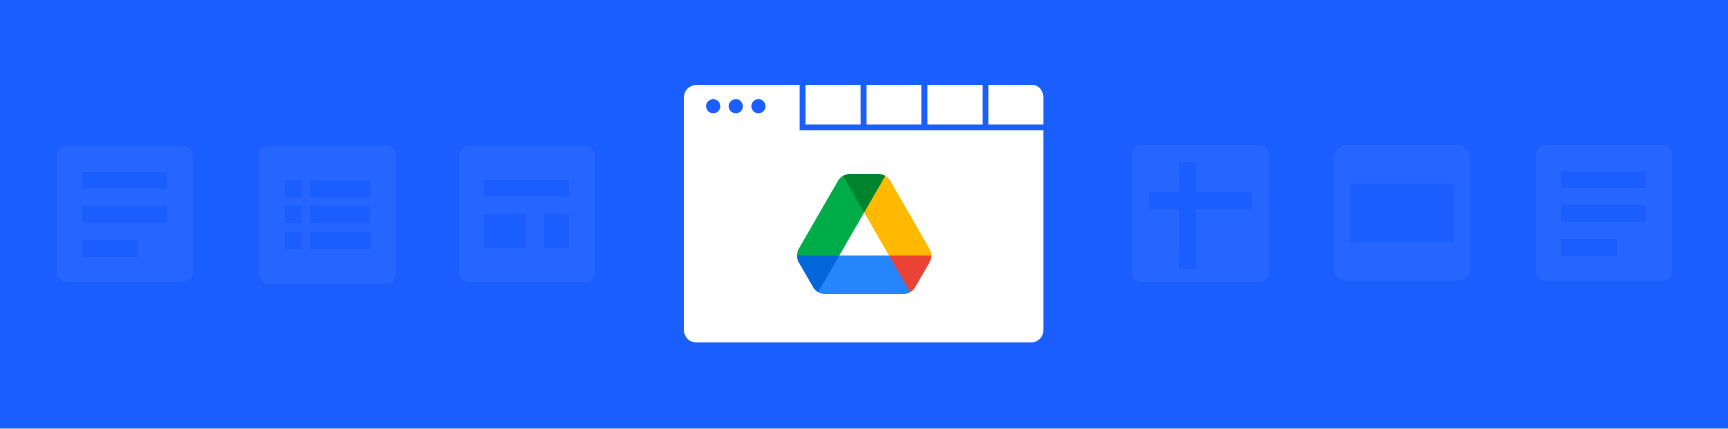 Google Drive logo with a background of Google product logos like Google Docs and Sheets